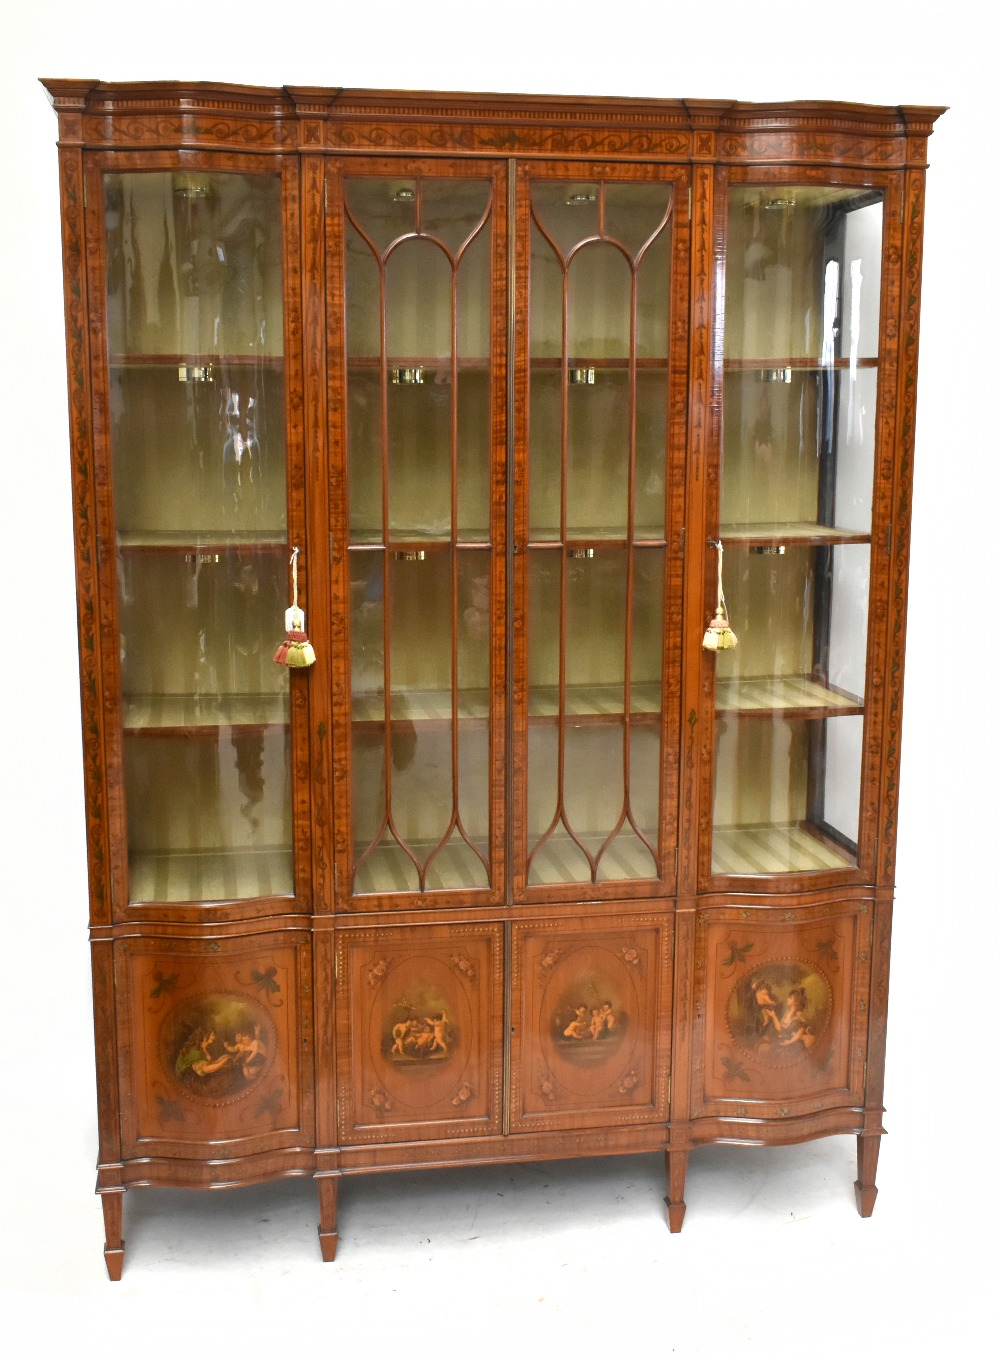 A fine late Victorian satinwood painted display cabinet with moulded cornice, serpentine side glazed